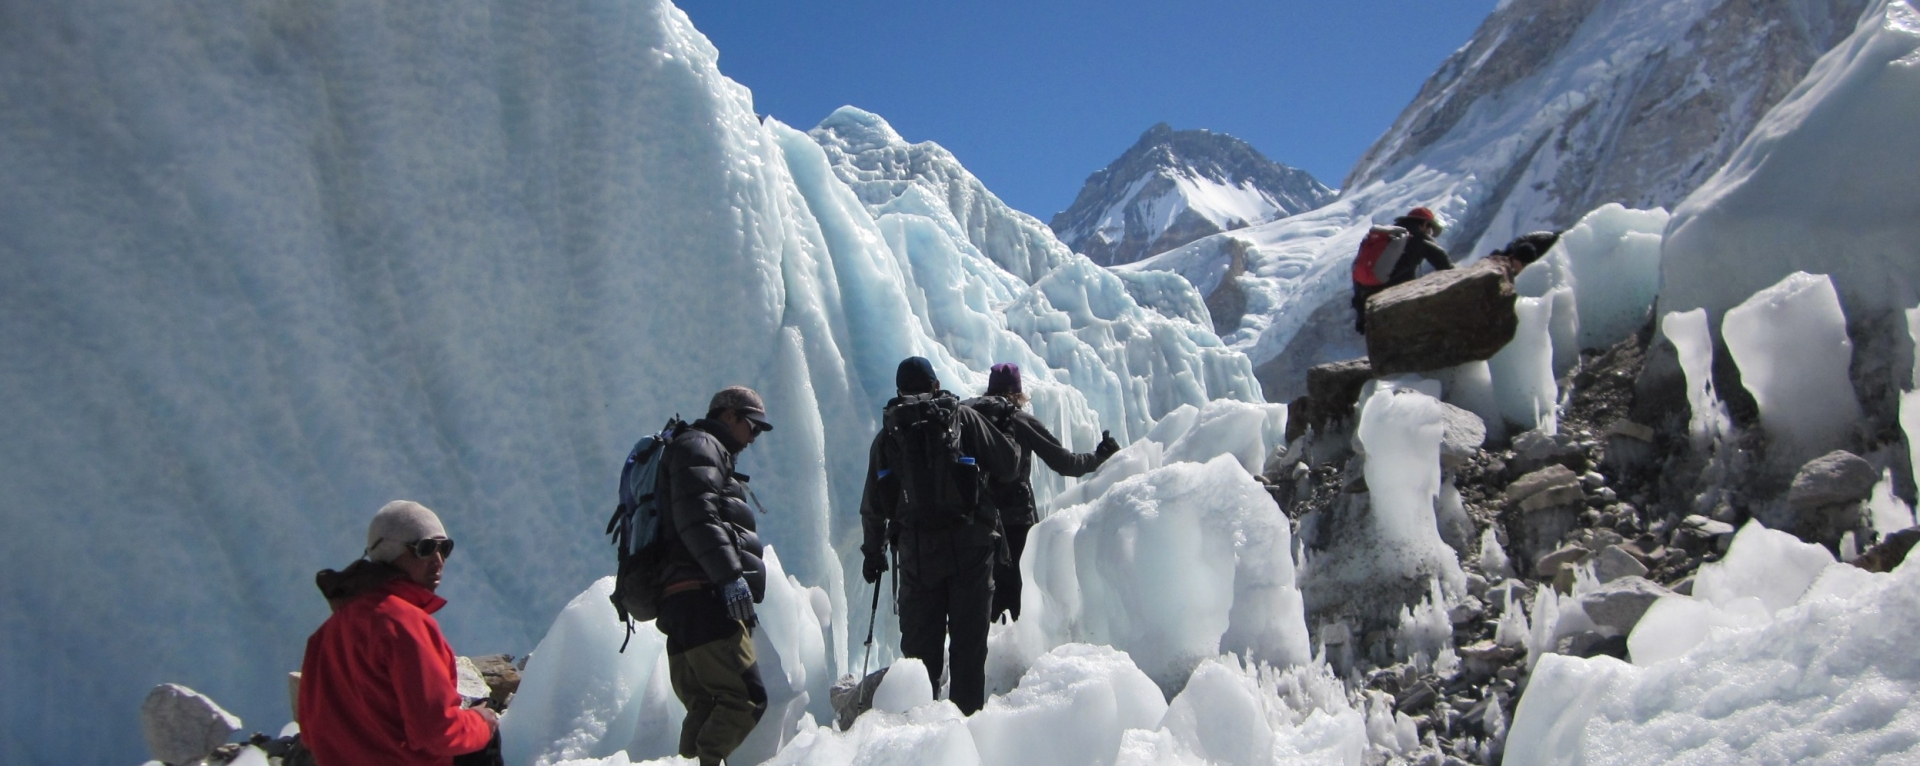 Sherpa's walking through the Khumbu icefalls on their way to Mt. Everest.